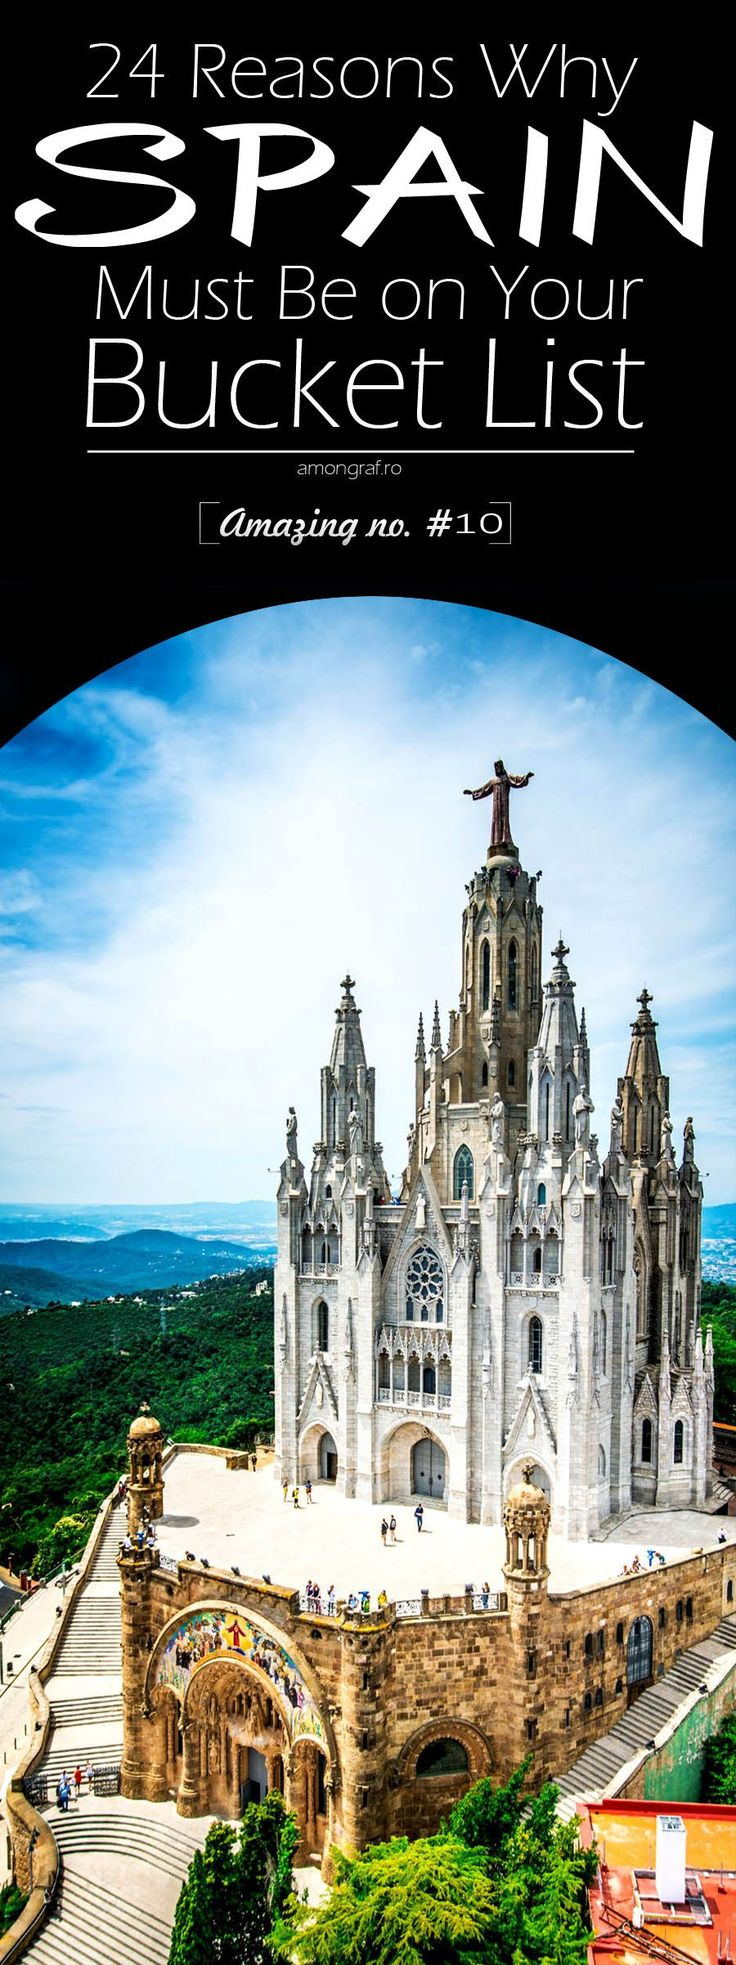 24 Reasons Why Spain Must Be on Your Bucket List. Amazing no. #10 #travel #Spain